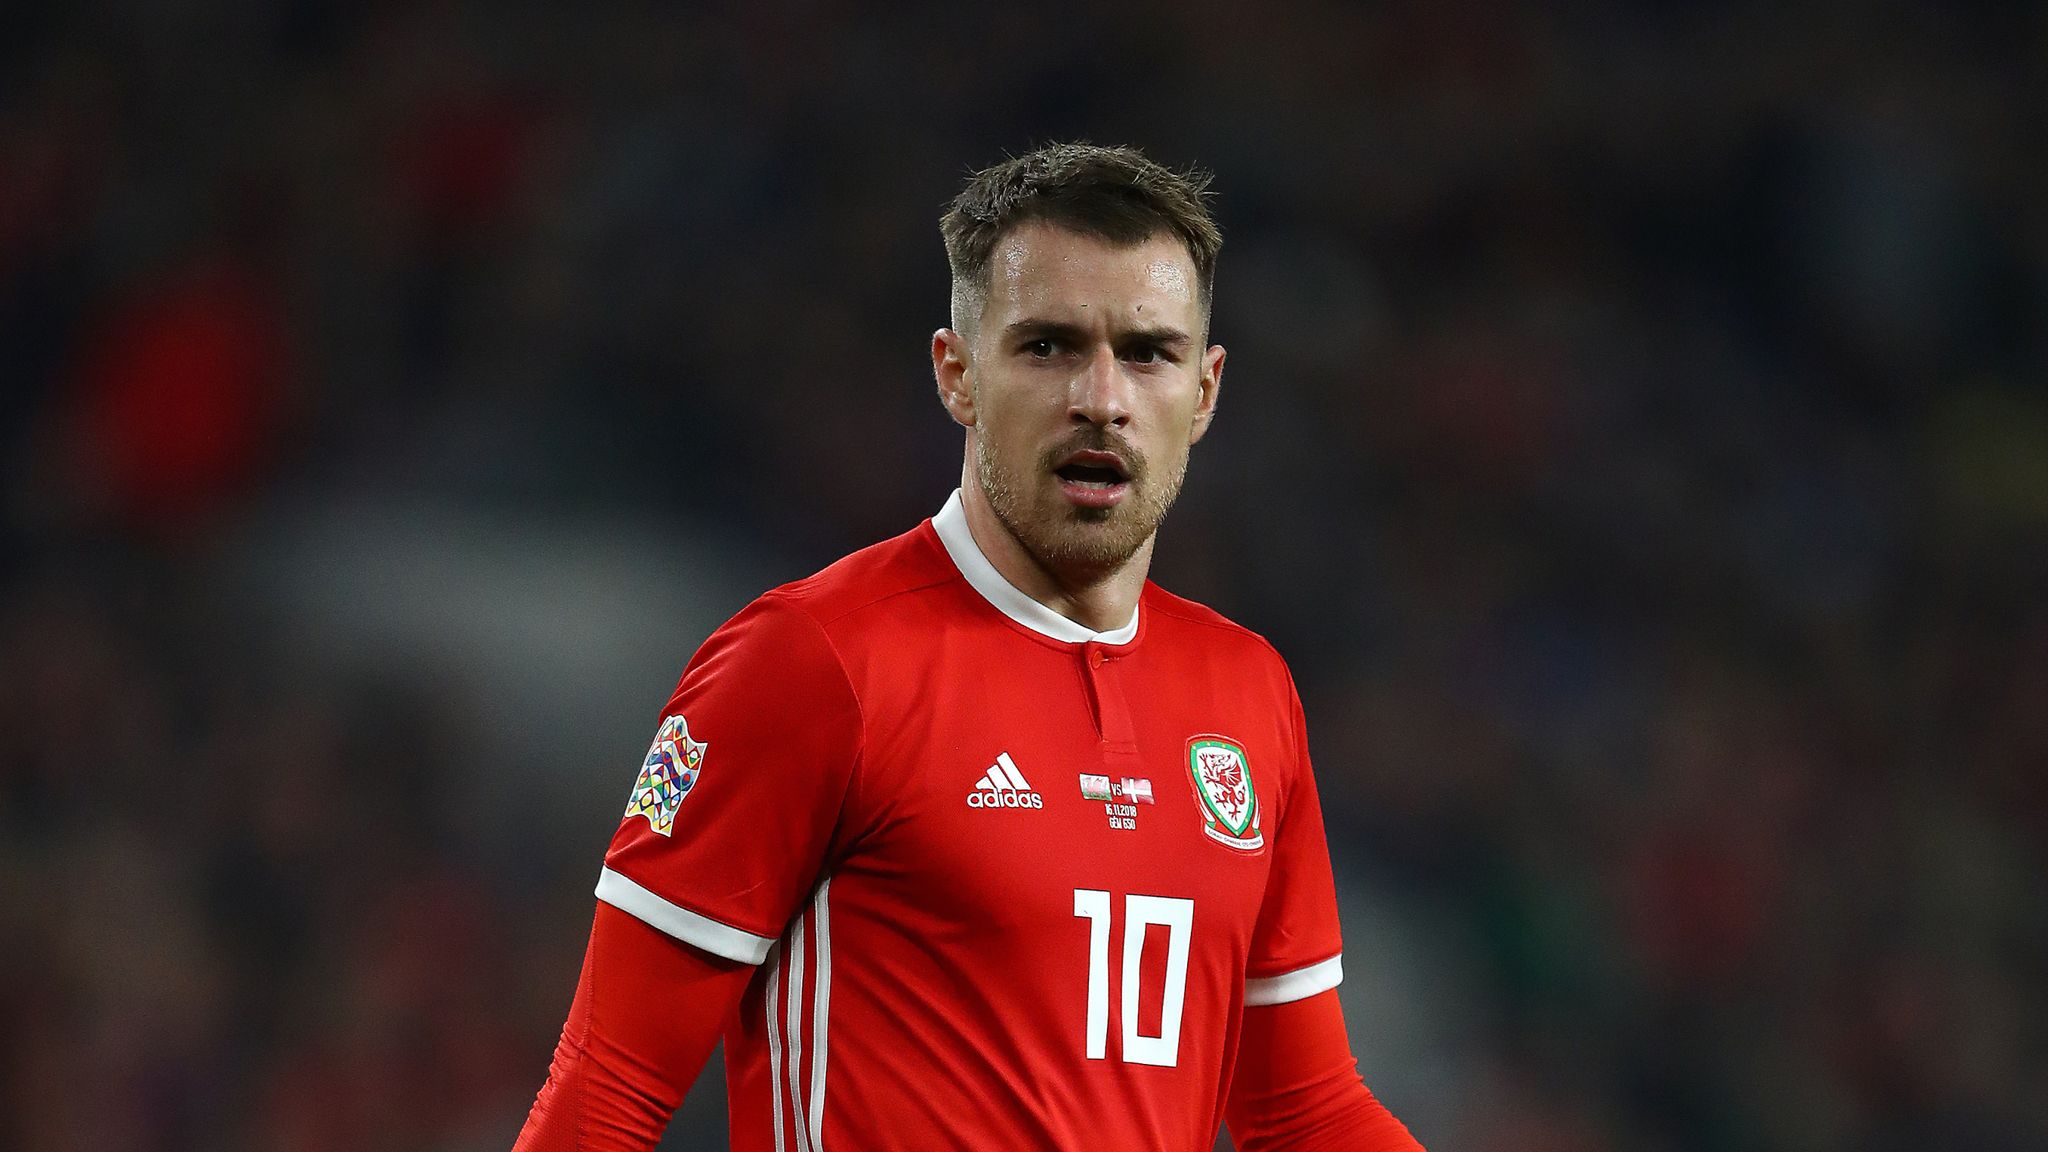 Aaron Ramsey out of Wales vs Croatia European Qualifier with thigh injury